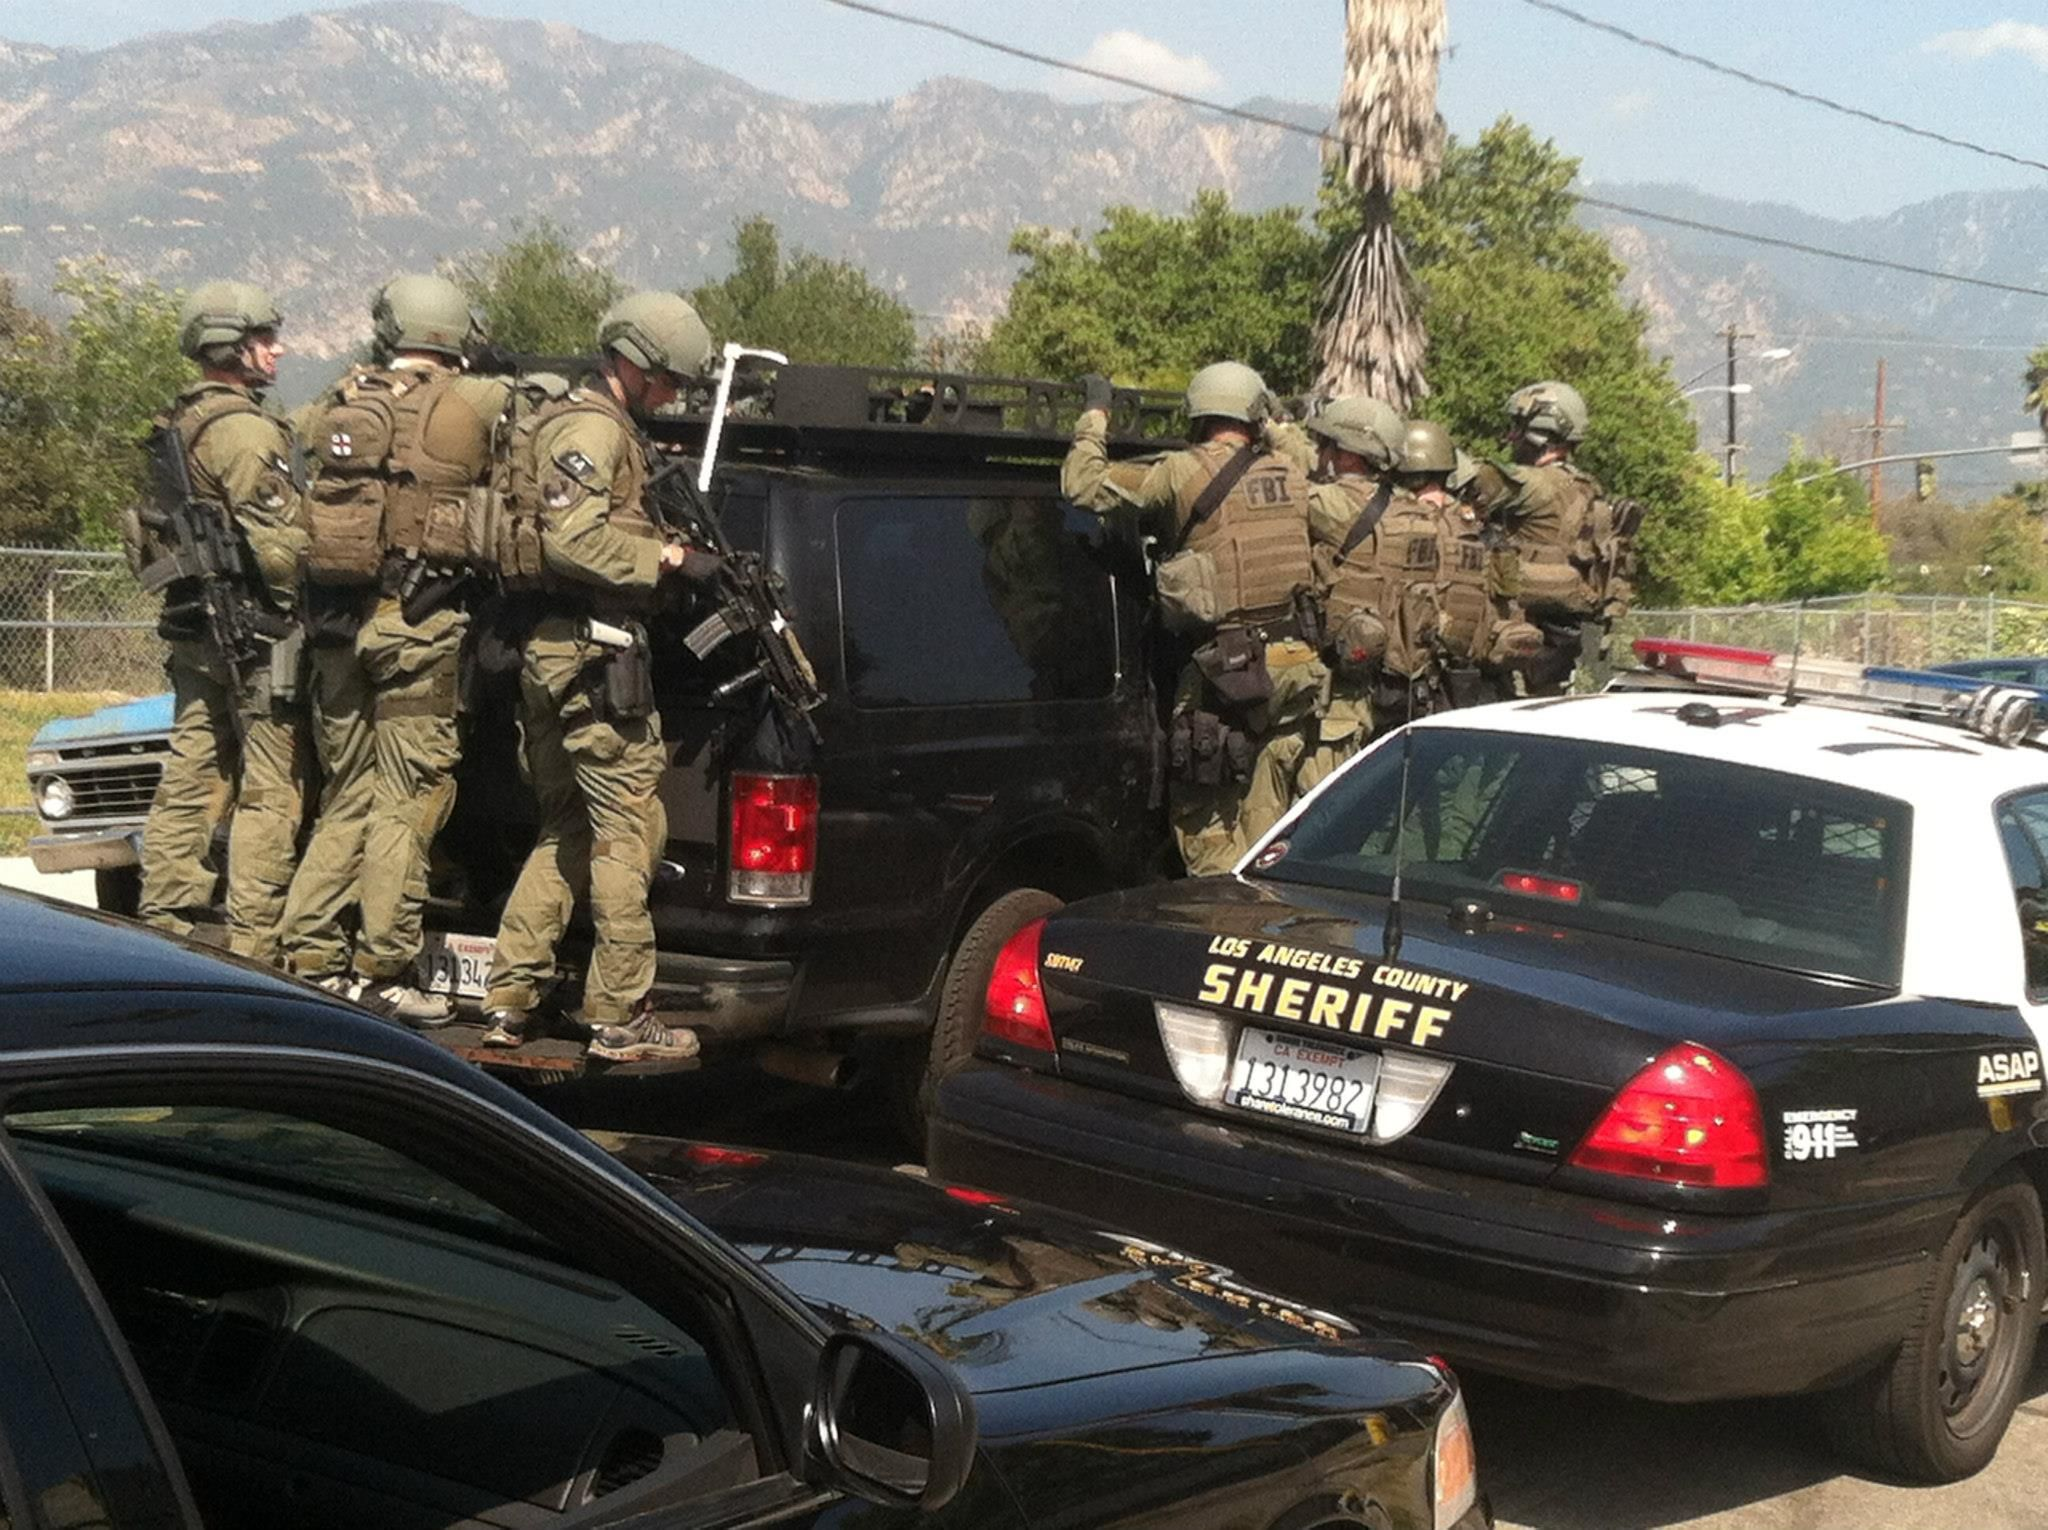 Pin by Los Angeles County Sheriff's Department on Altadena